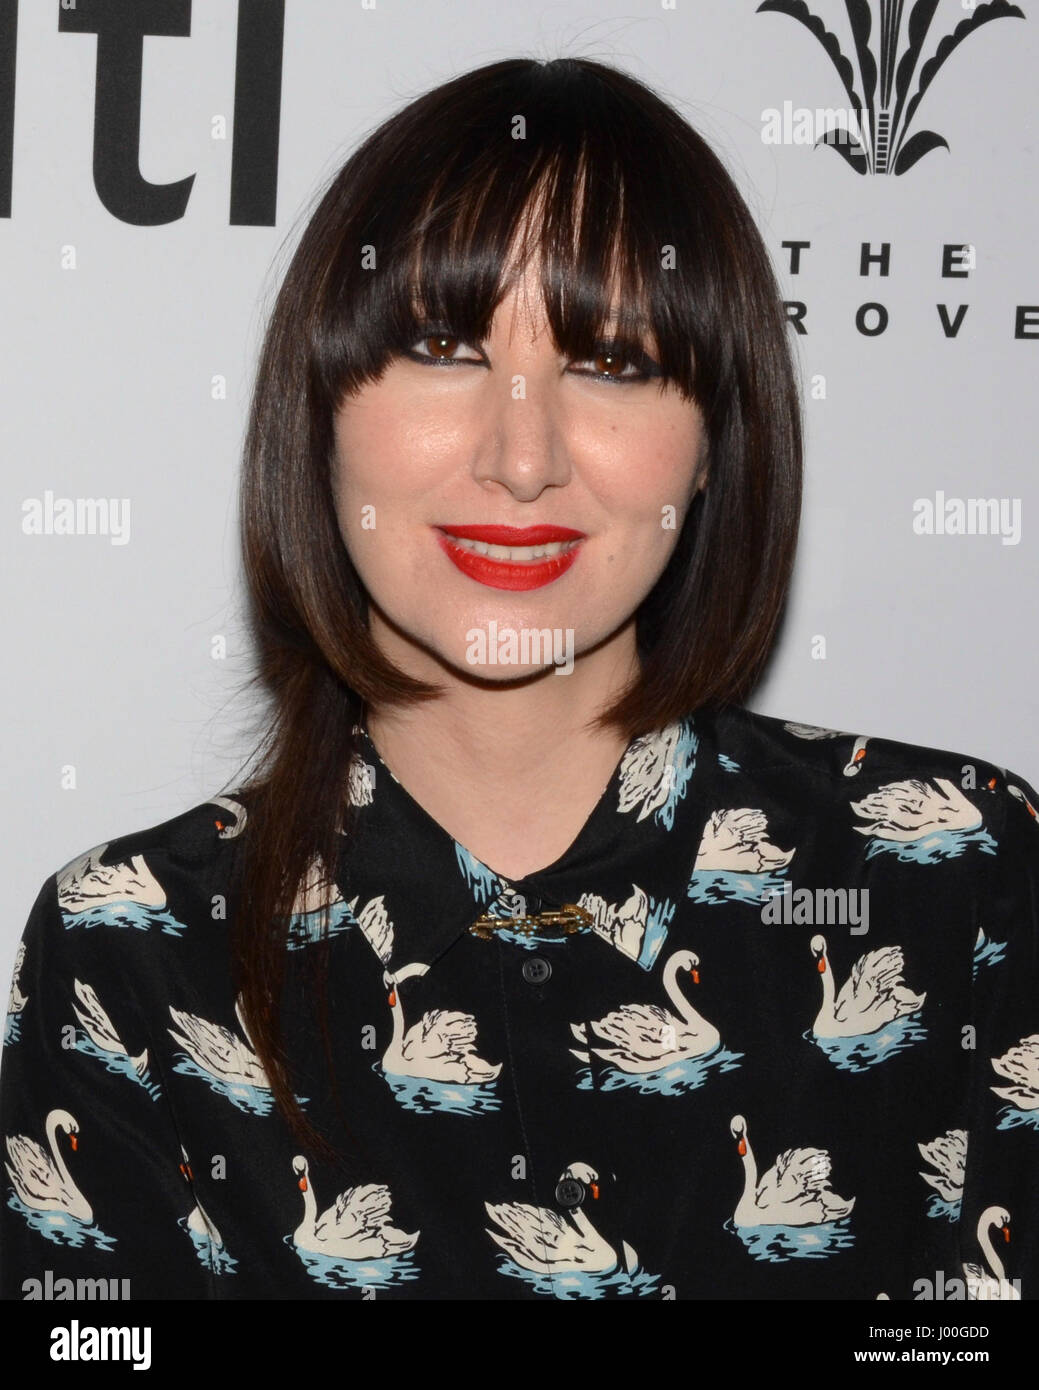 Karen O arrive for the Premiere Of 'SHOT! The Psycho-Spiritual Mantra of Rock' held at Pacific Theatres - Stock Image